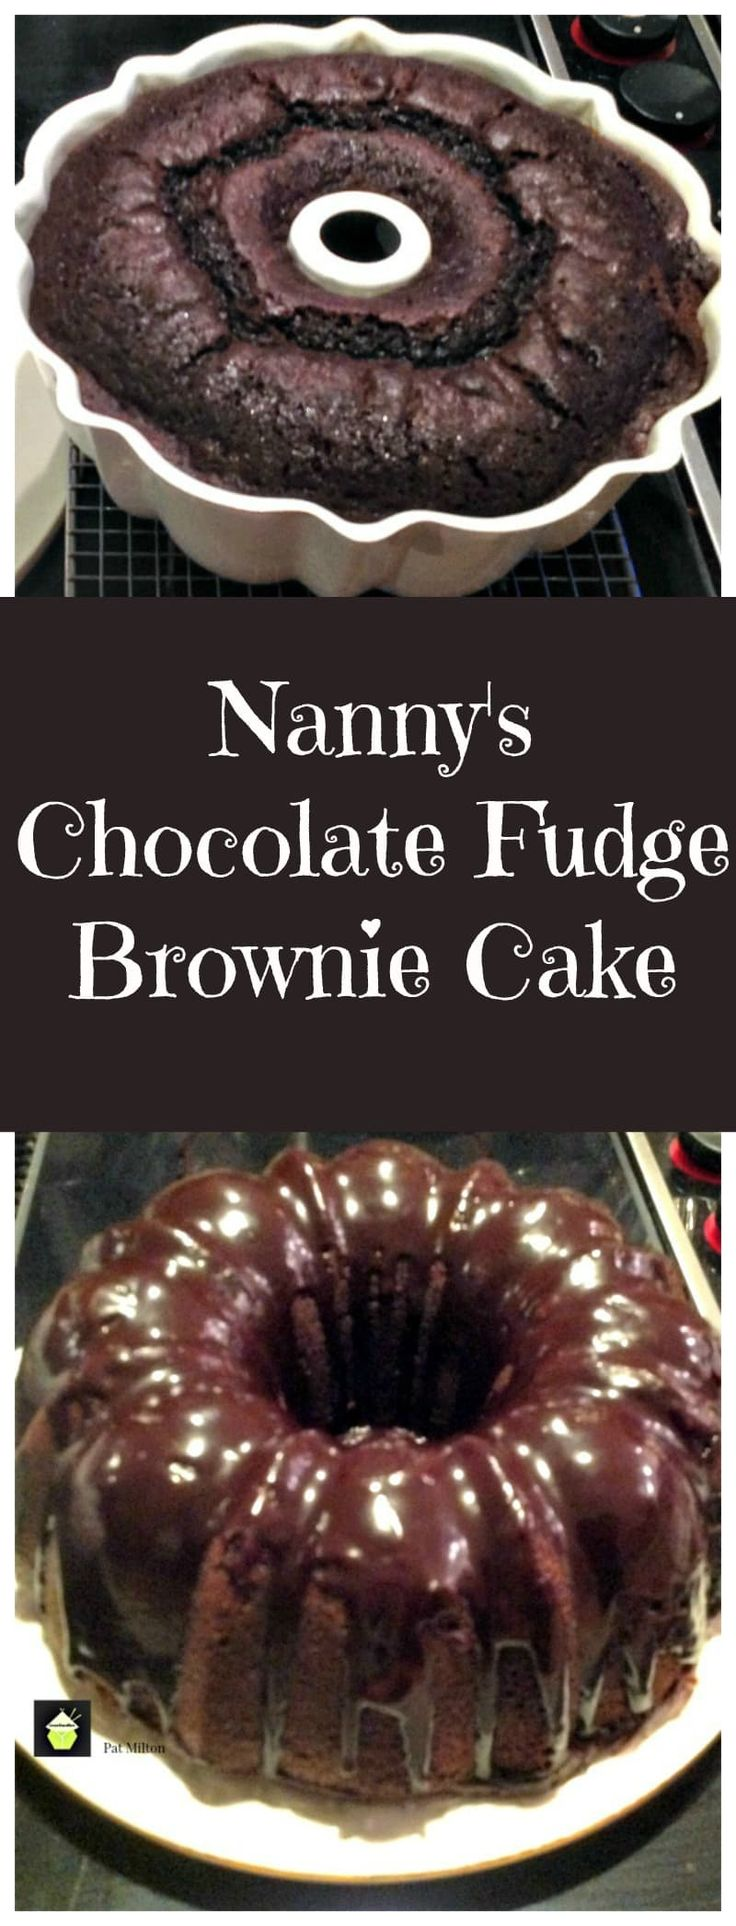 #Nanny's #Chocolate #Fudge #Brownie #Cake is a #keeper #recipe! #Easy to make and #perfect for #chocolate #lover's #Recipes #Recipesgrowtopia #recipesmycafe #recipespixelworld #recipesgt #recipescake #recipeschicken #recipesliquid #food #foodporn #recipesfood #cake #cookies #healthy #mom #kids #wedding #cakewedding